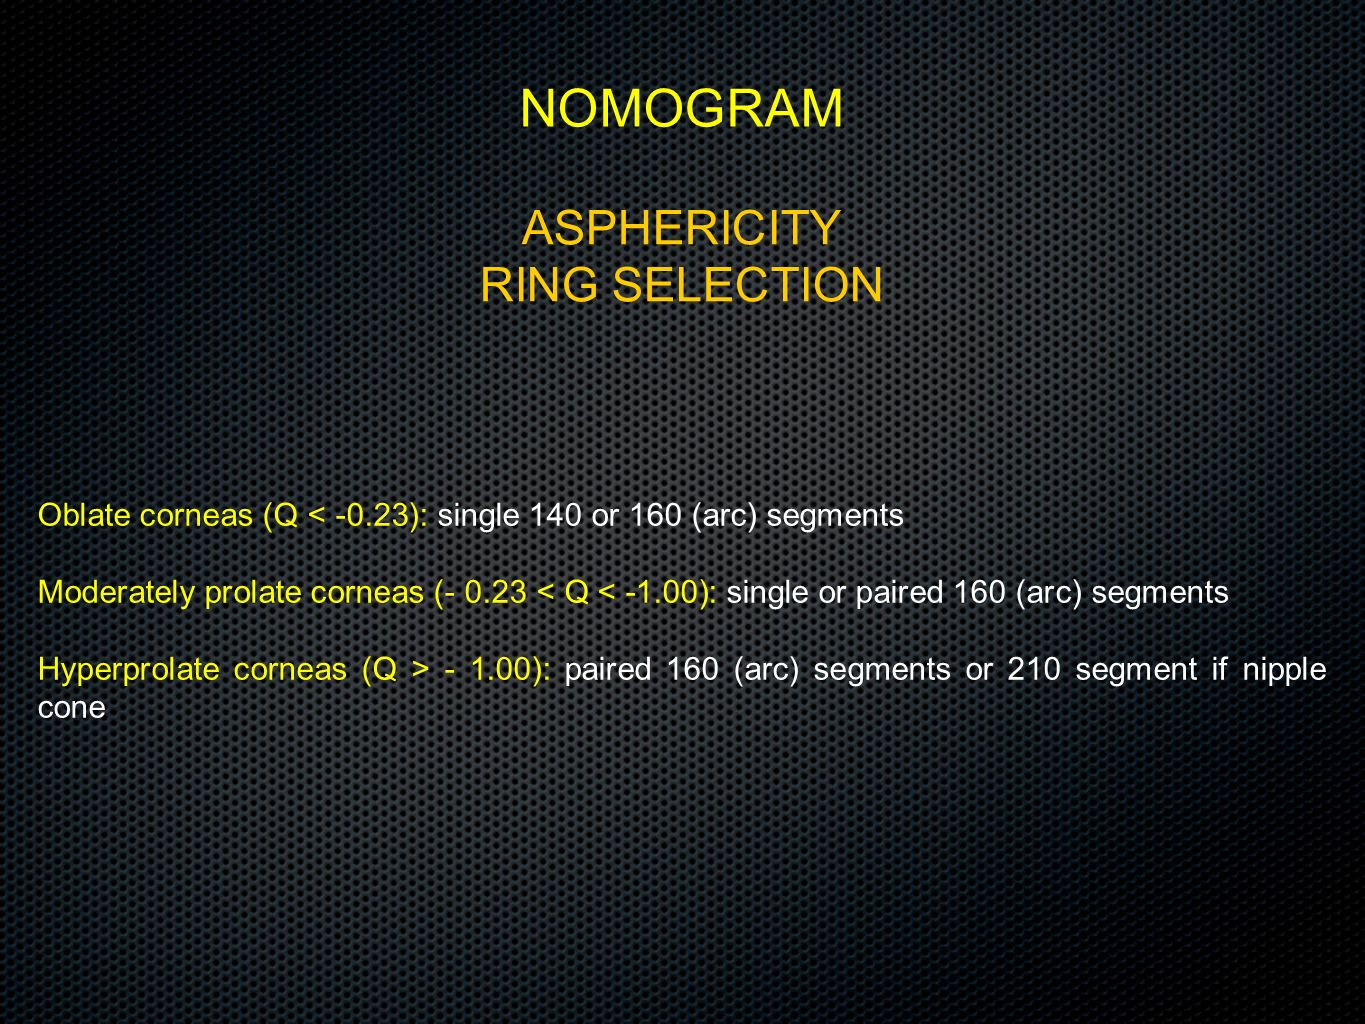 NOMOGRAM ASPHERICITY RING SELECTION